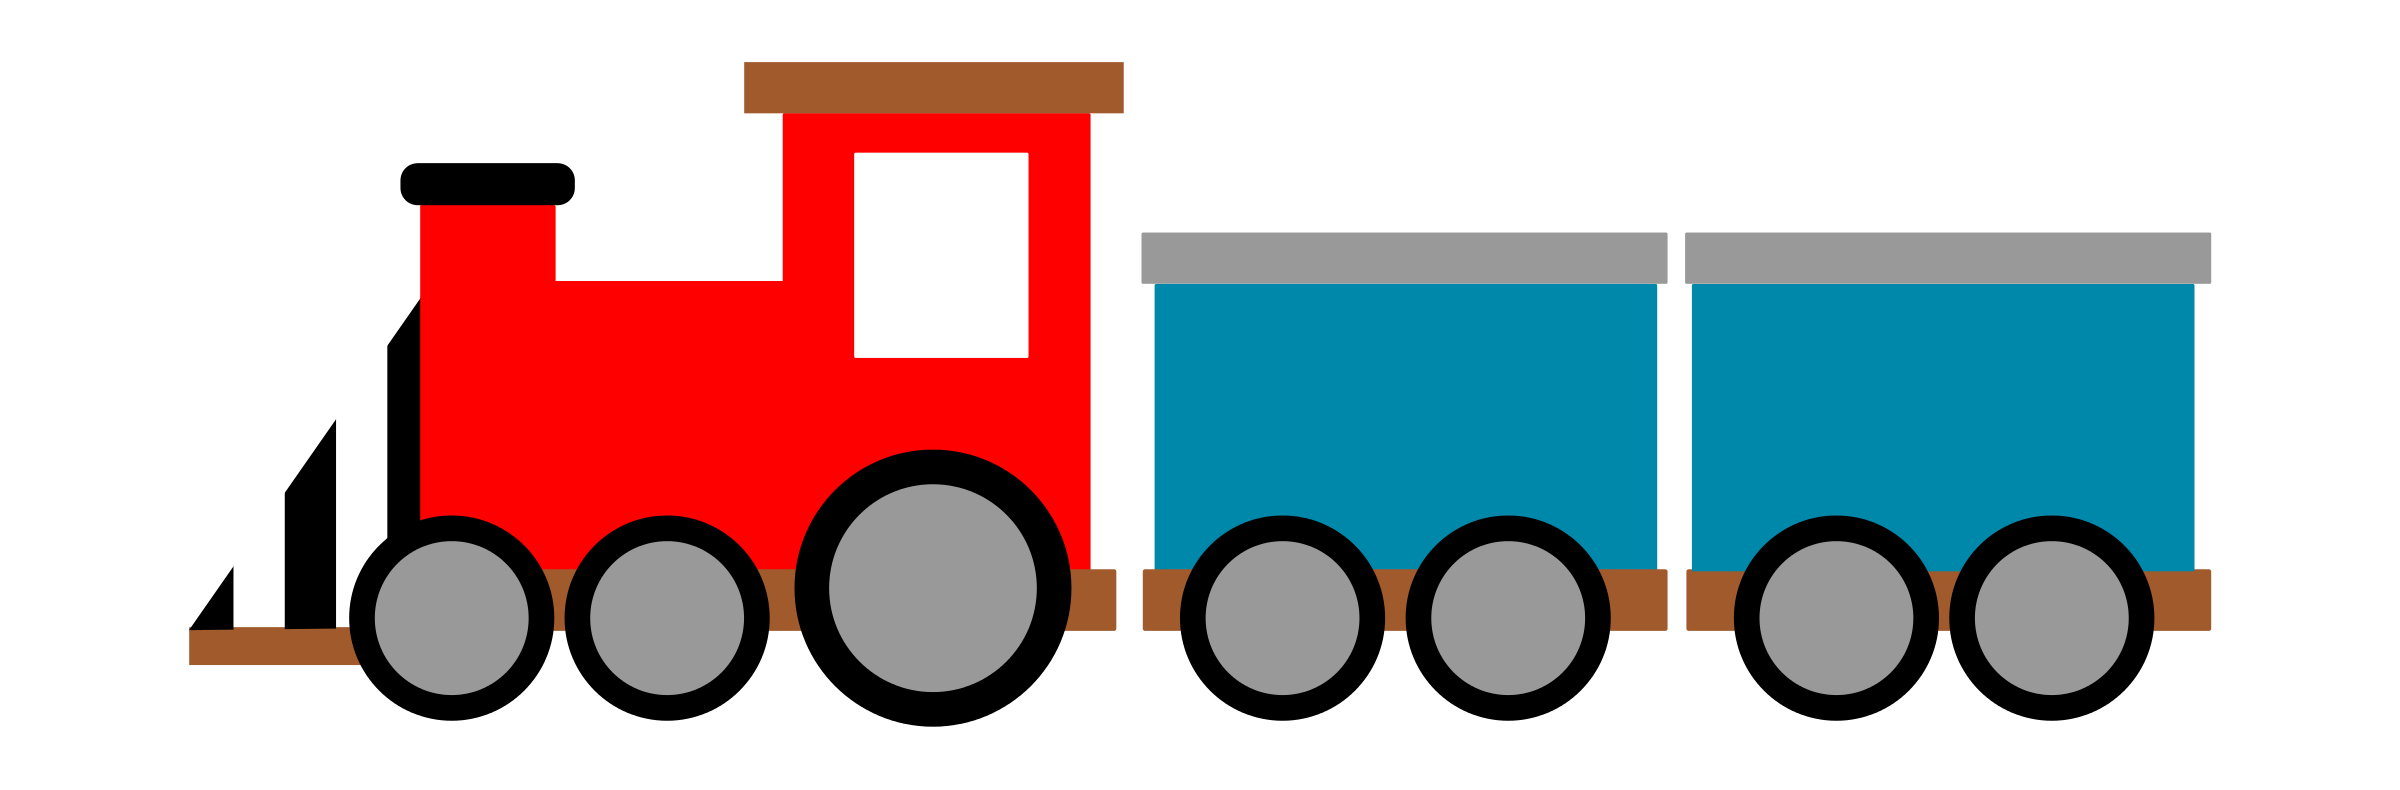 Toy train clipart clipartbold.